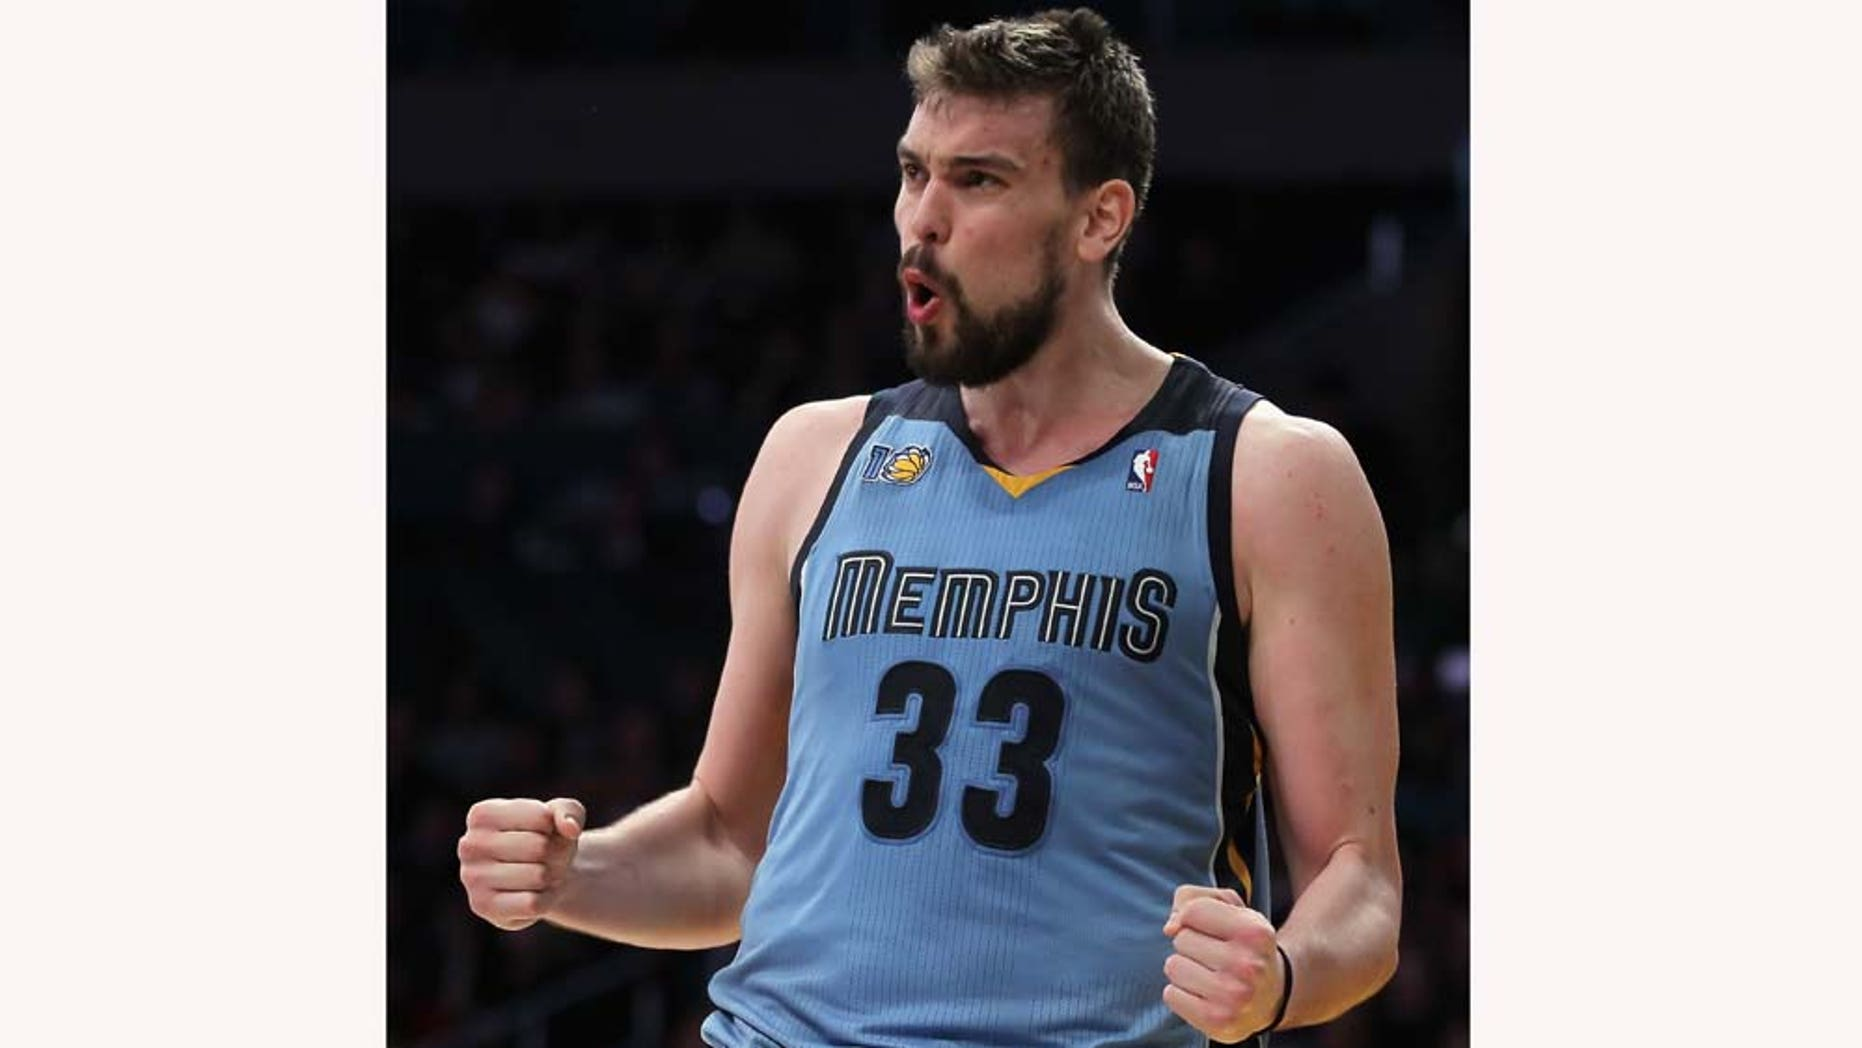 LOS ANGELES, CA - JANUARY 02:  Marc Gasol #33 of the Memphis Grizzlies reacts after committing a foul against the Los Angeles Lakers during the second half at Staples Center on January 2, 2011 in Los Angeles, California. The Grizzlies defeated the Lakers 104-85. NOTE TO USER: User expressly acknowledges and agrees that, by downloading and or using this photograph, User is consenting to the terms and conditions of the Getty Images License Agreement.  (Photo by Jeff Gross/Getty Images)